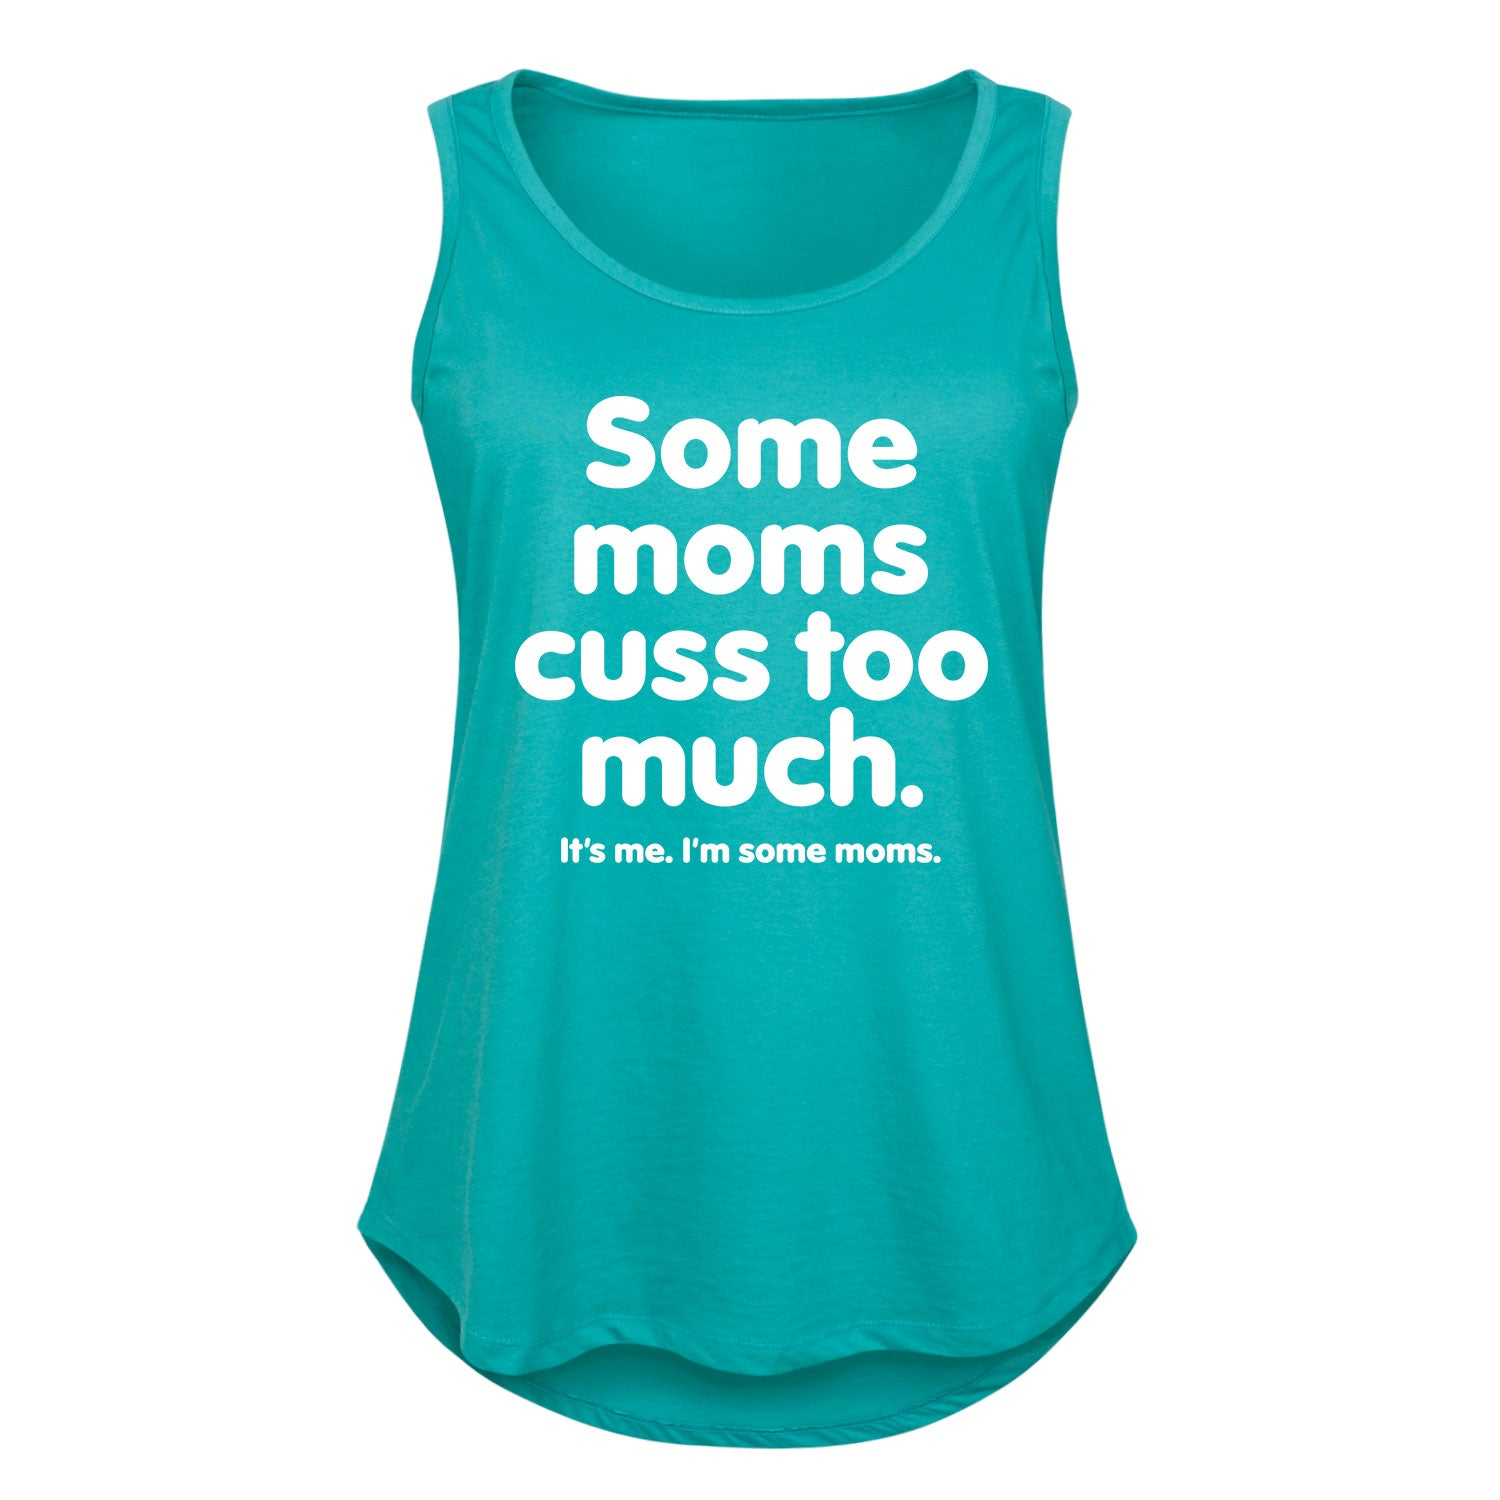 Some Moms Cuss Too Much - Women's Plus Size Tank